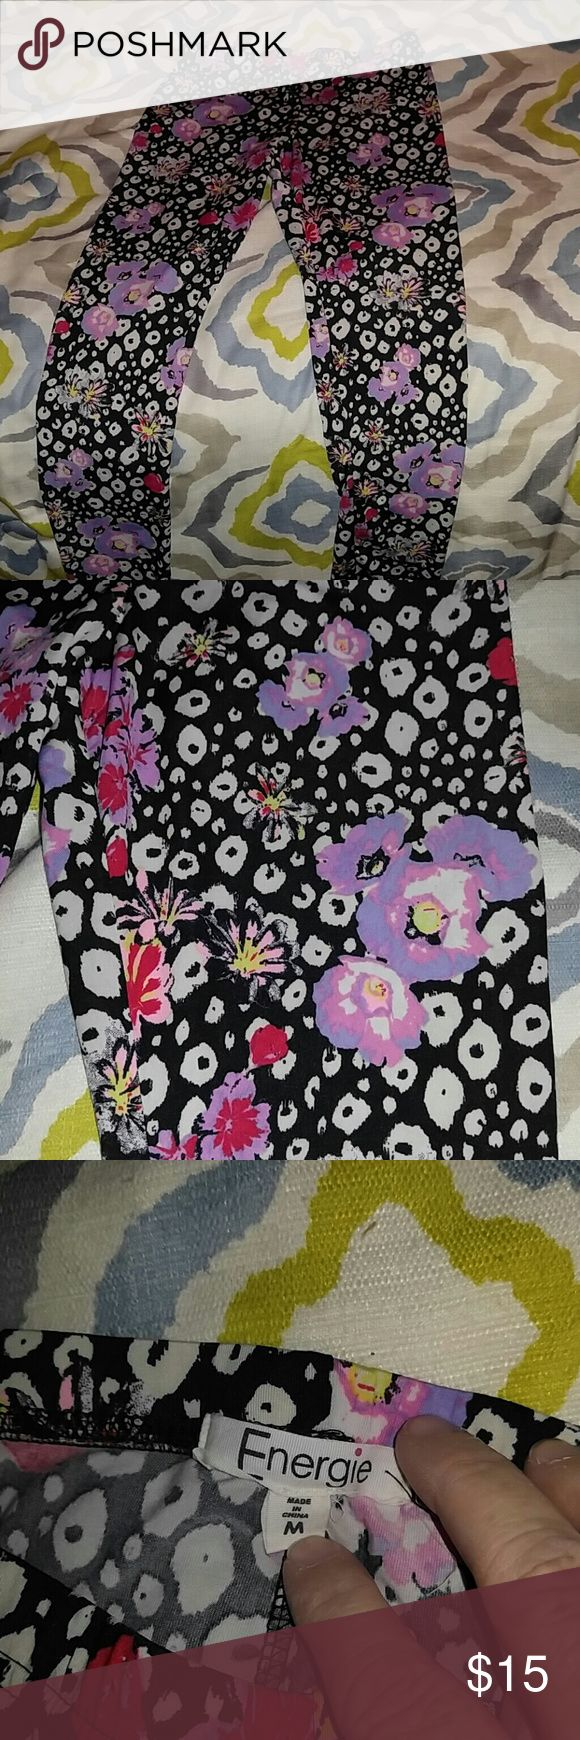 Energie leggings/ Very small size Medium These leggings are so soft and silky and very pretty, however it says a size medium but either they are a youths medium or they are xxs. Just want you to know before purchase. But they are in perfect used condition. I bought them for my daughter who wears a woman's medium but these are definitely smaller than that. If anyone needs measurements just ask. Also, remember that leggings do stretch quite a bit. Energie Pants Leggings